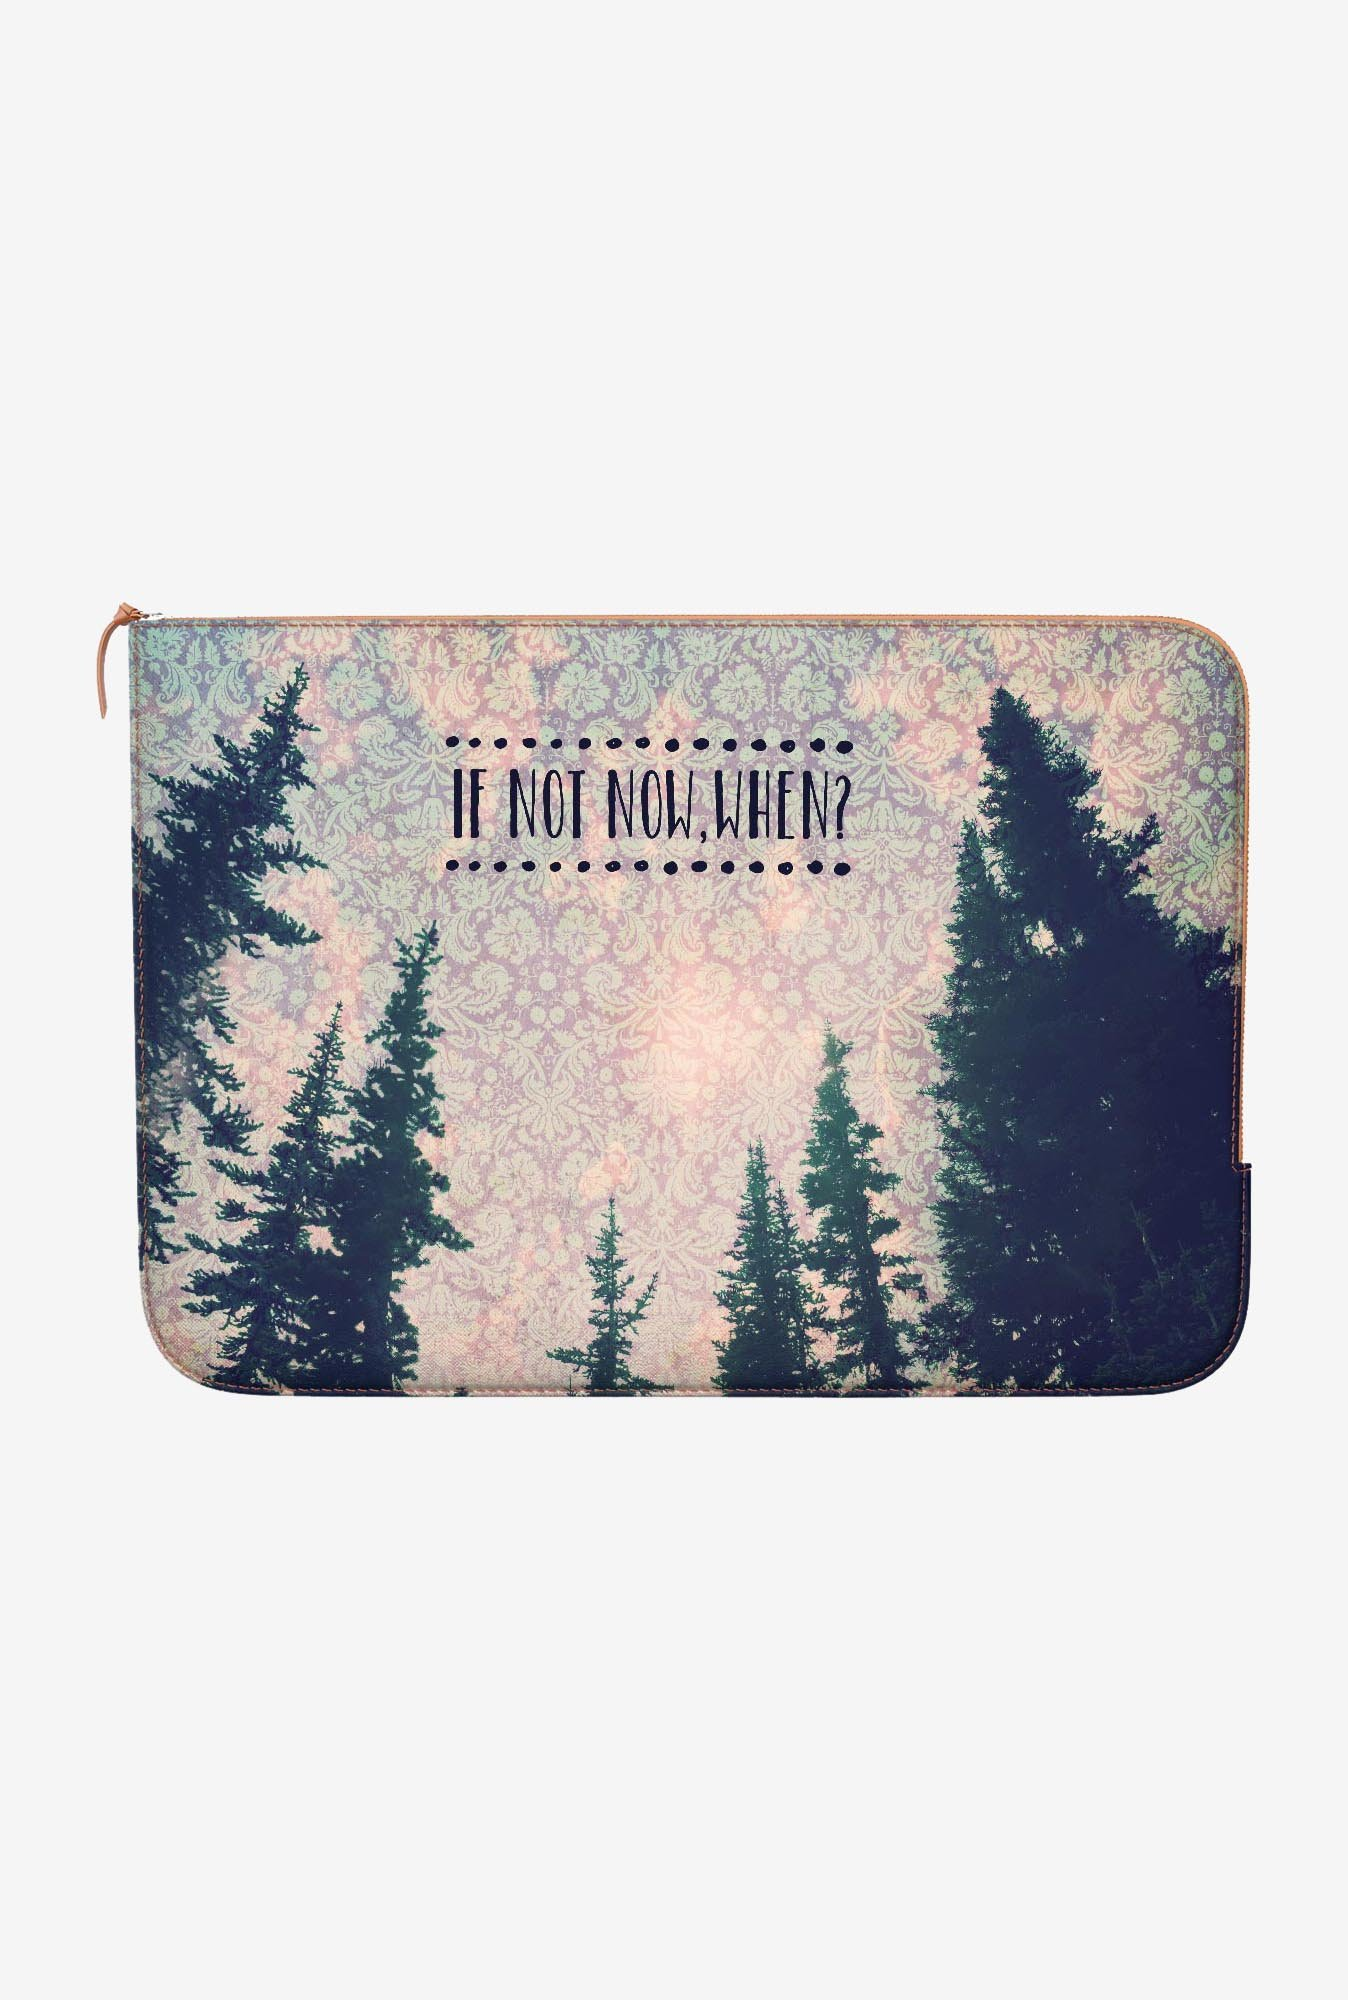 DailyObjects If Not Now MacBook Air 13 Zippered Sleeve